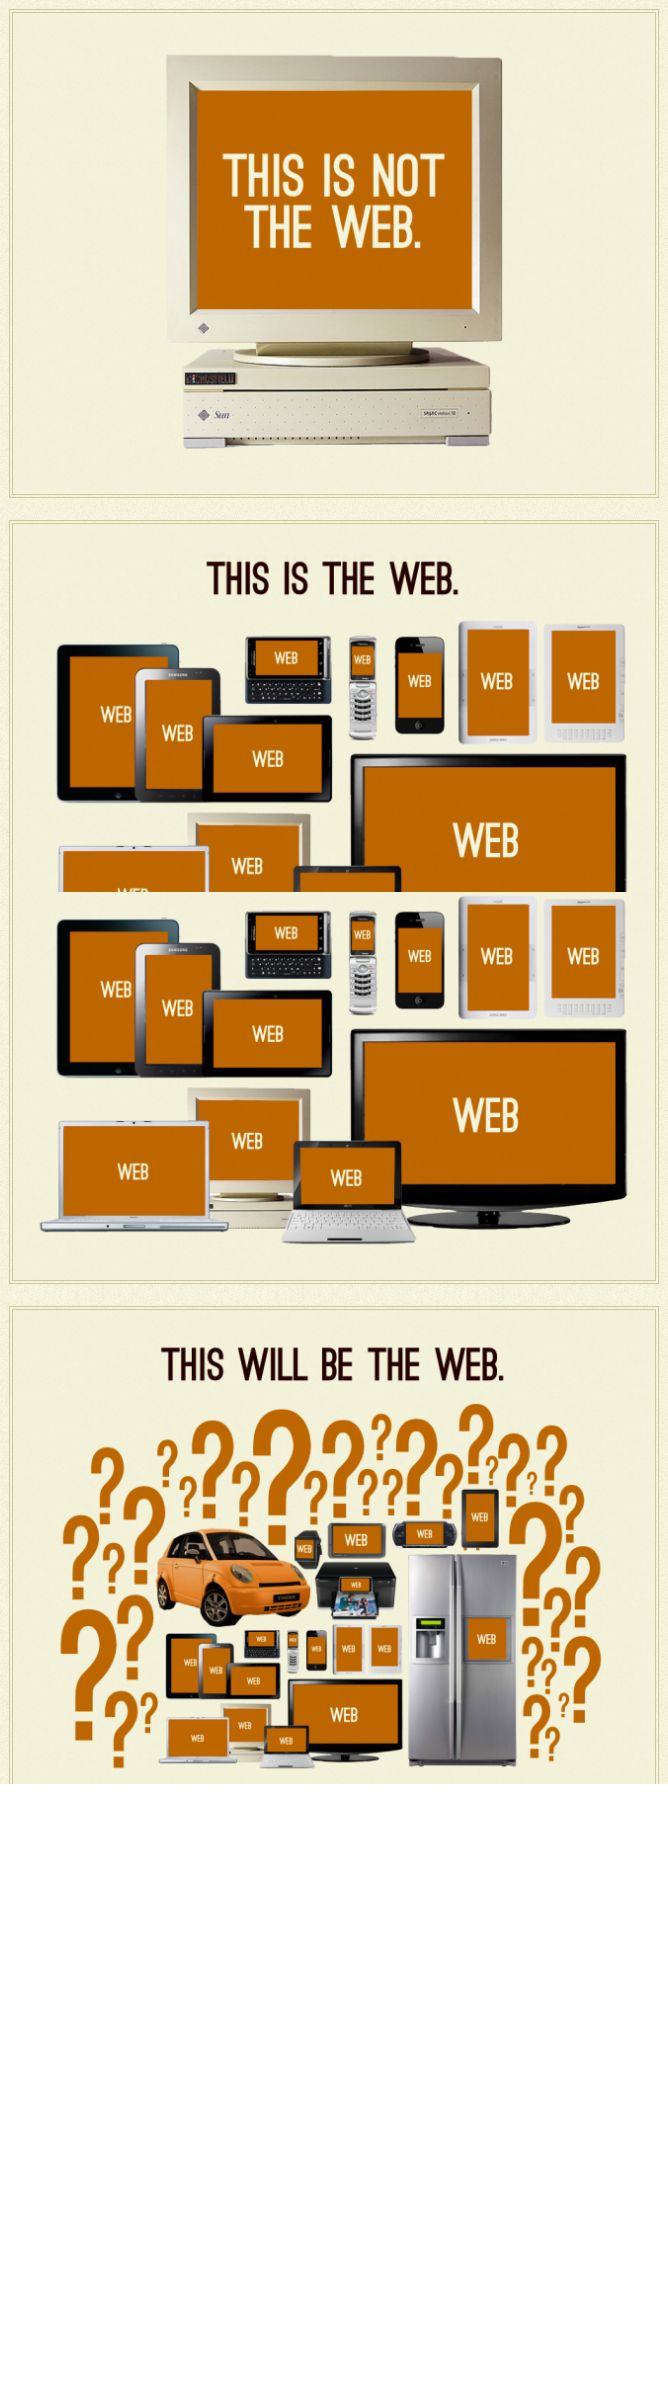 Web from hard-wired to mobile to in everything, everywhere Responsive Web Design Reality #Infographic h/t @Chuck Ganchorre Dowe